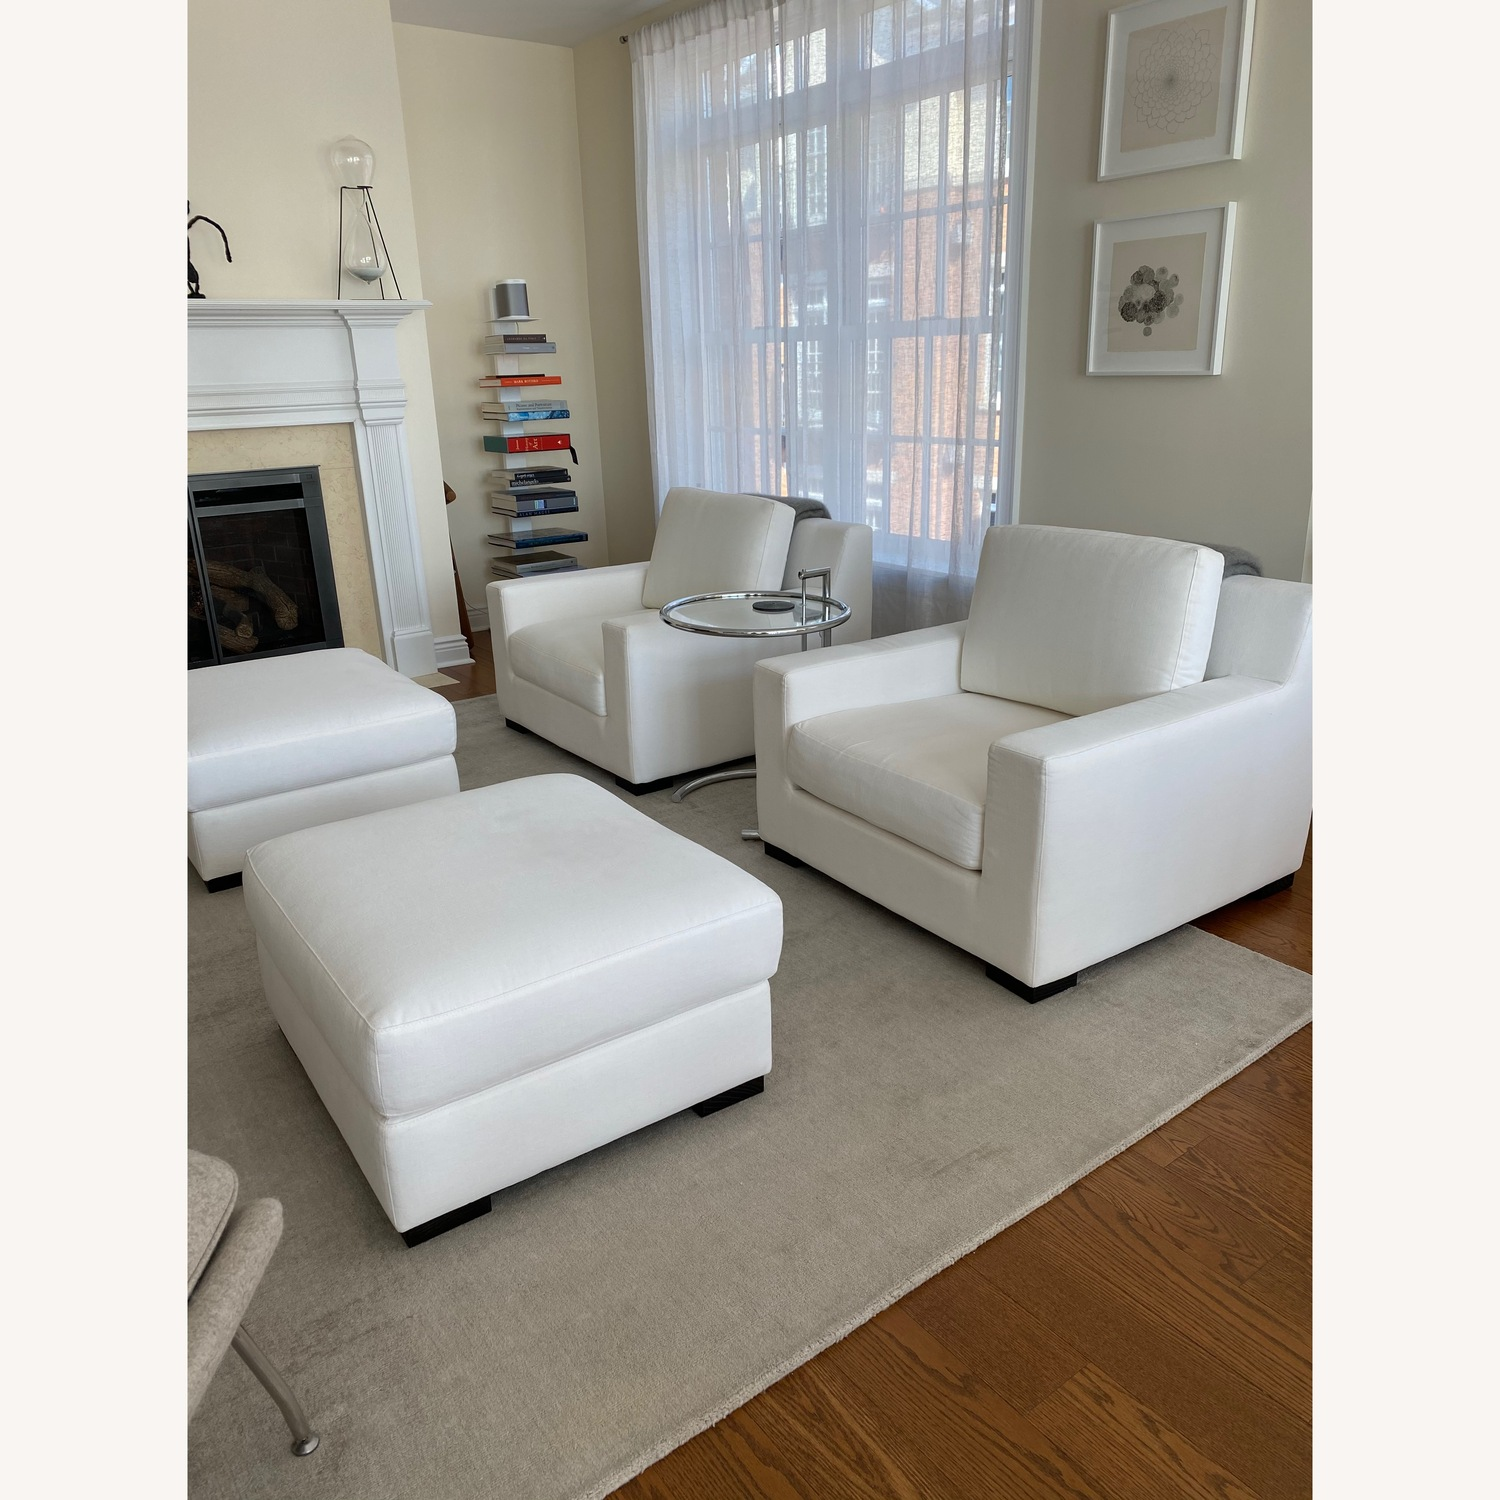 Restoration Hardware Modena Chairs with Ottomans Set - image-1